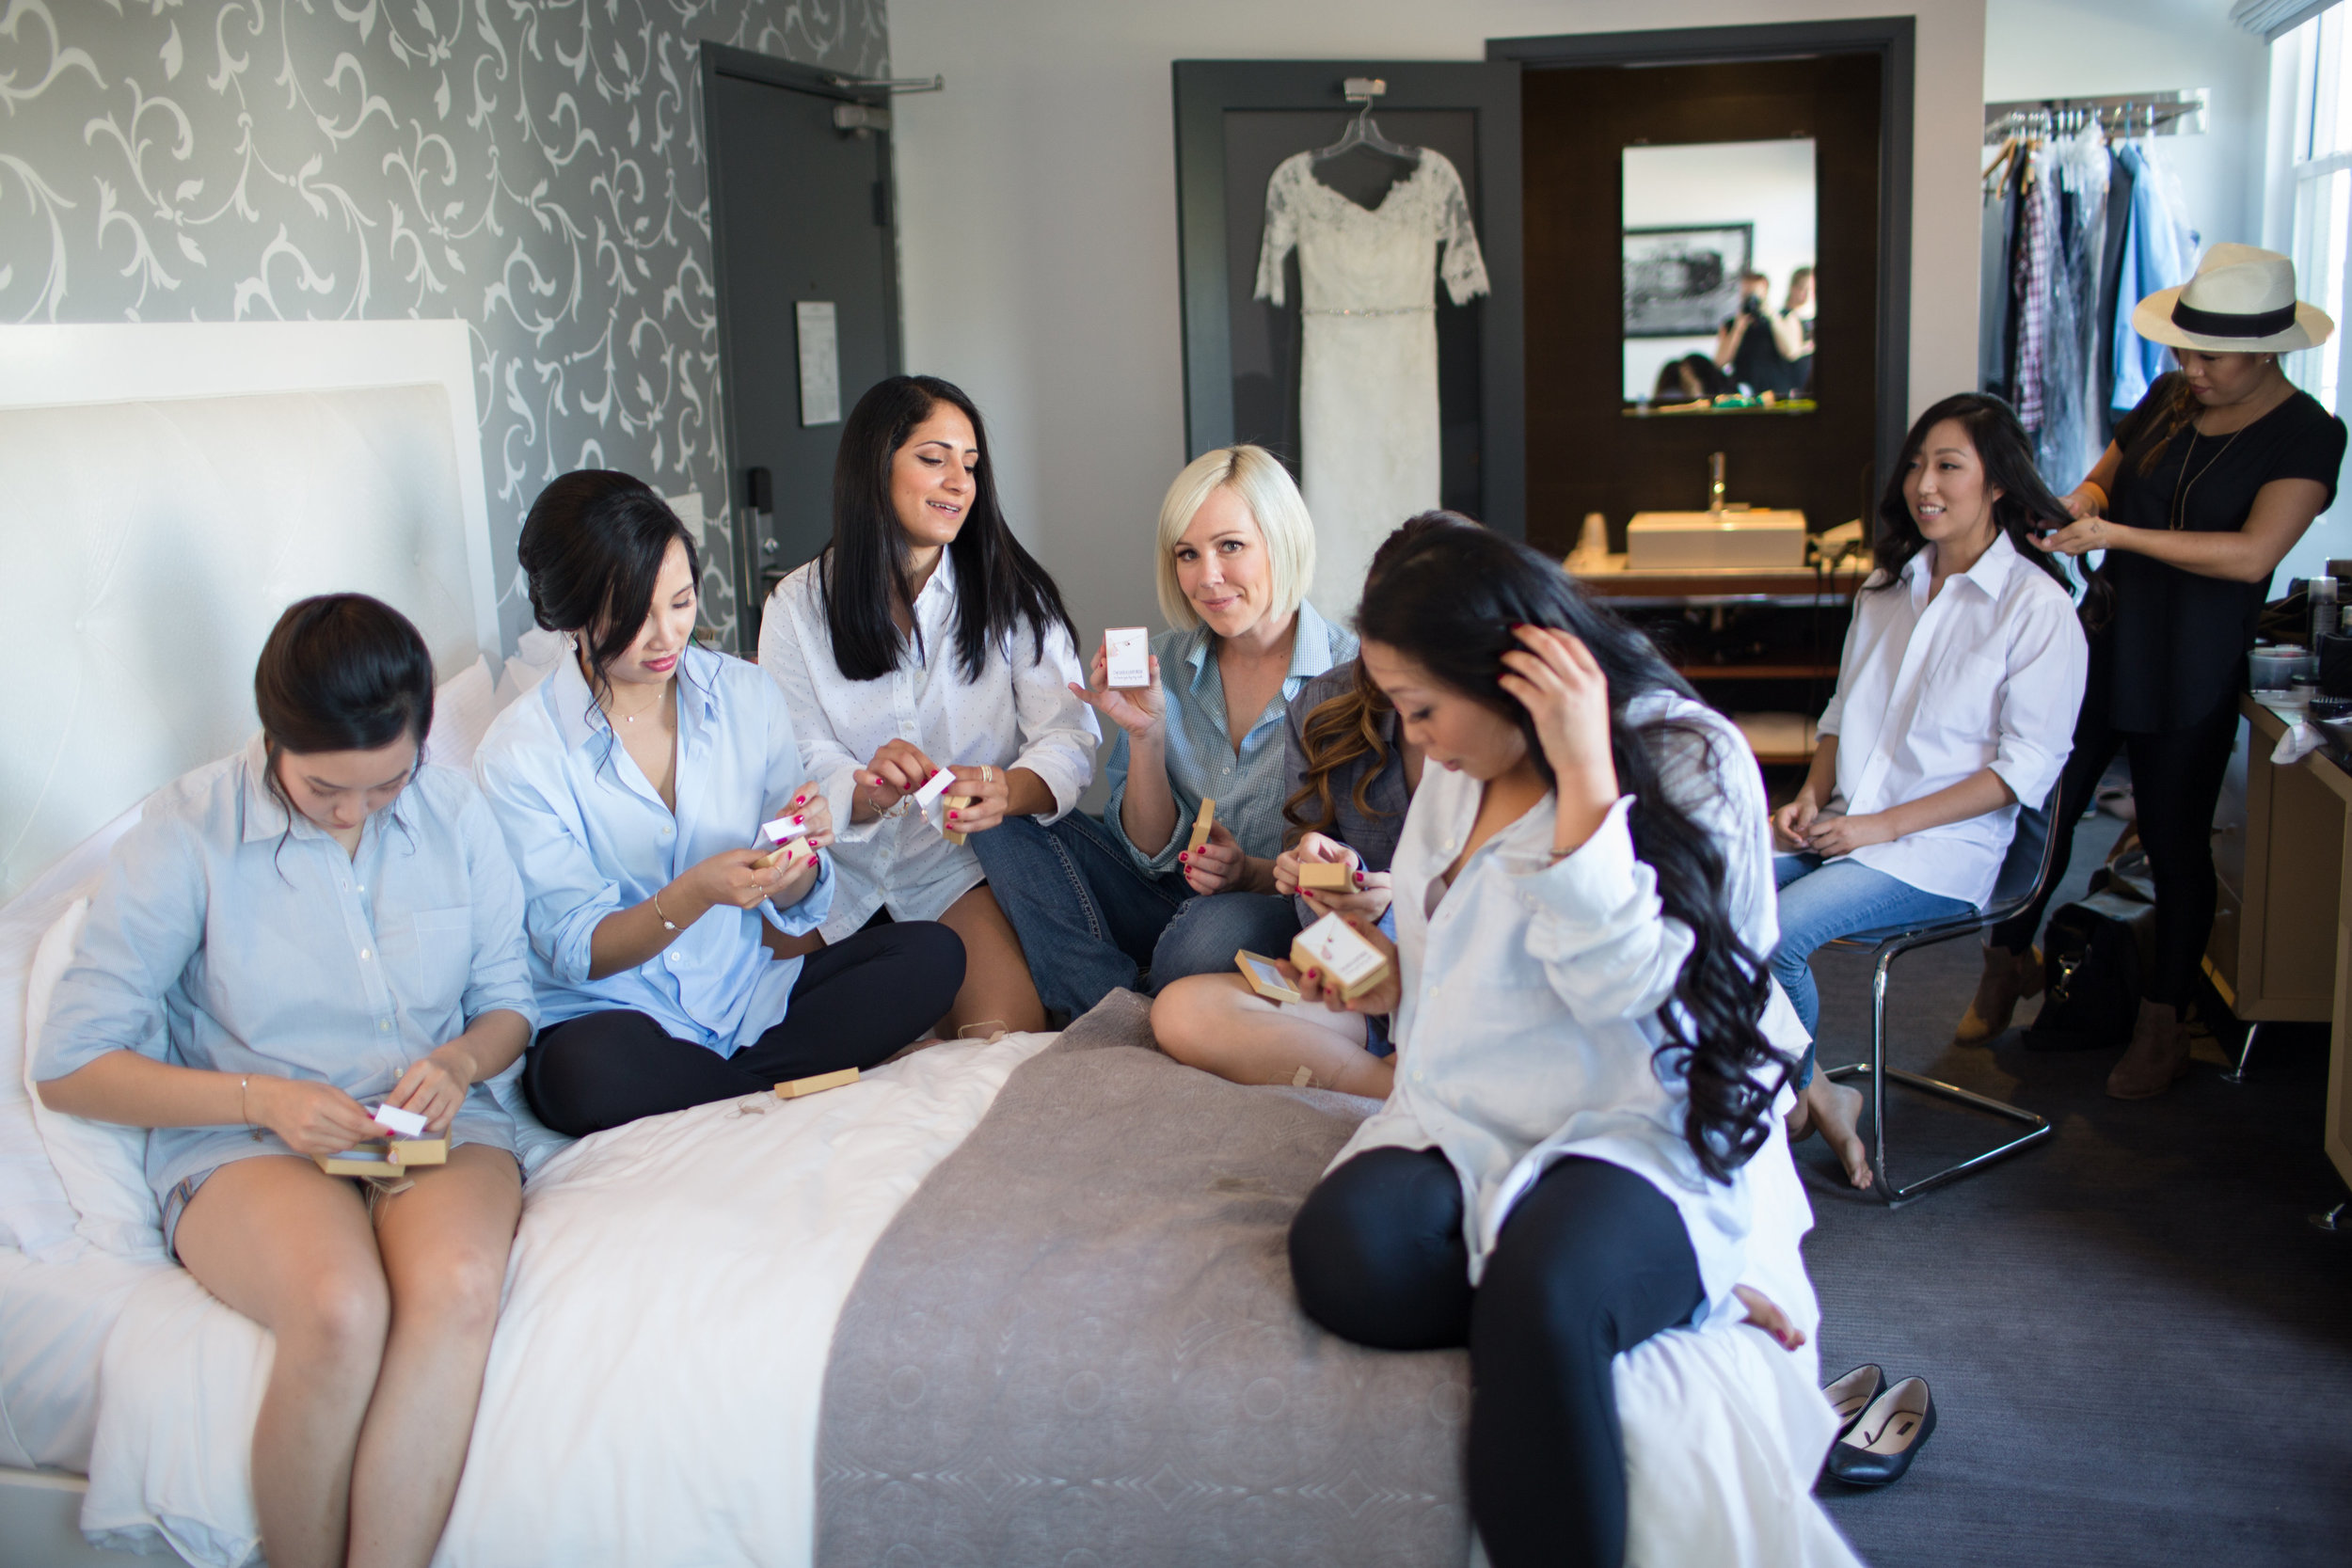 Bridesmaids Open Gifts